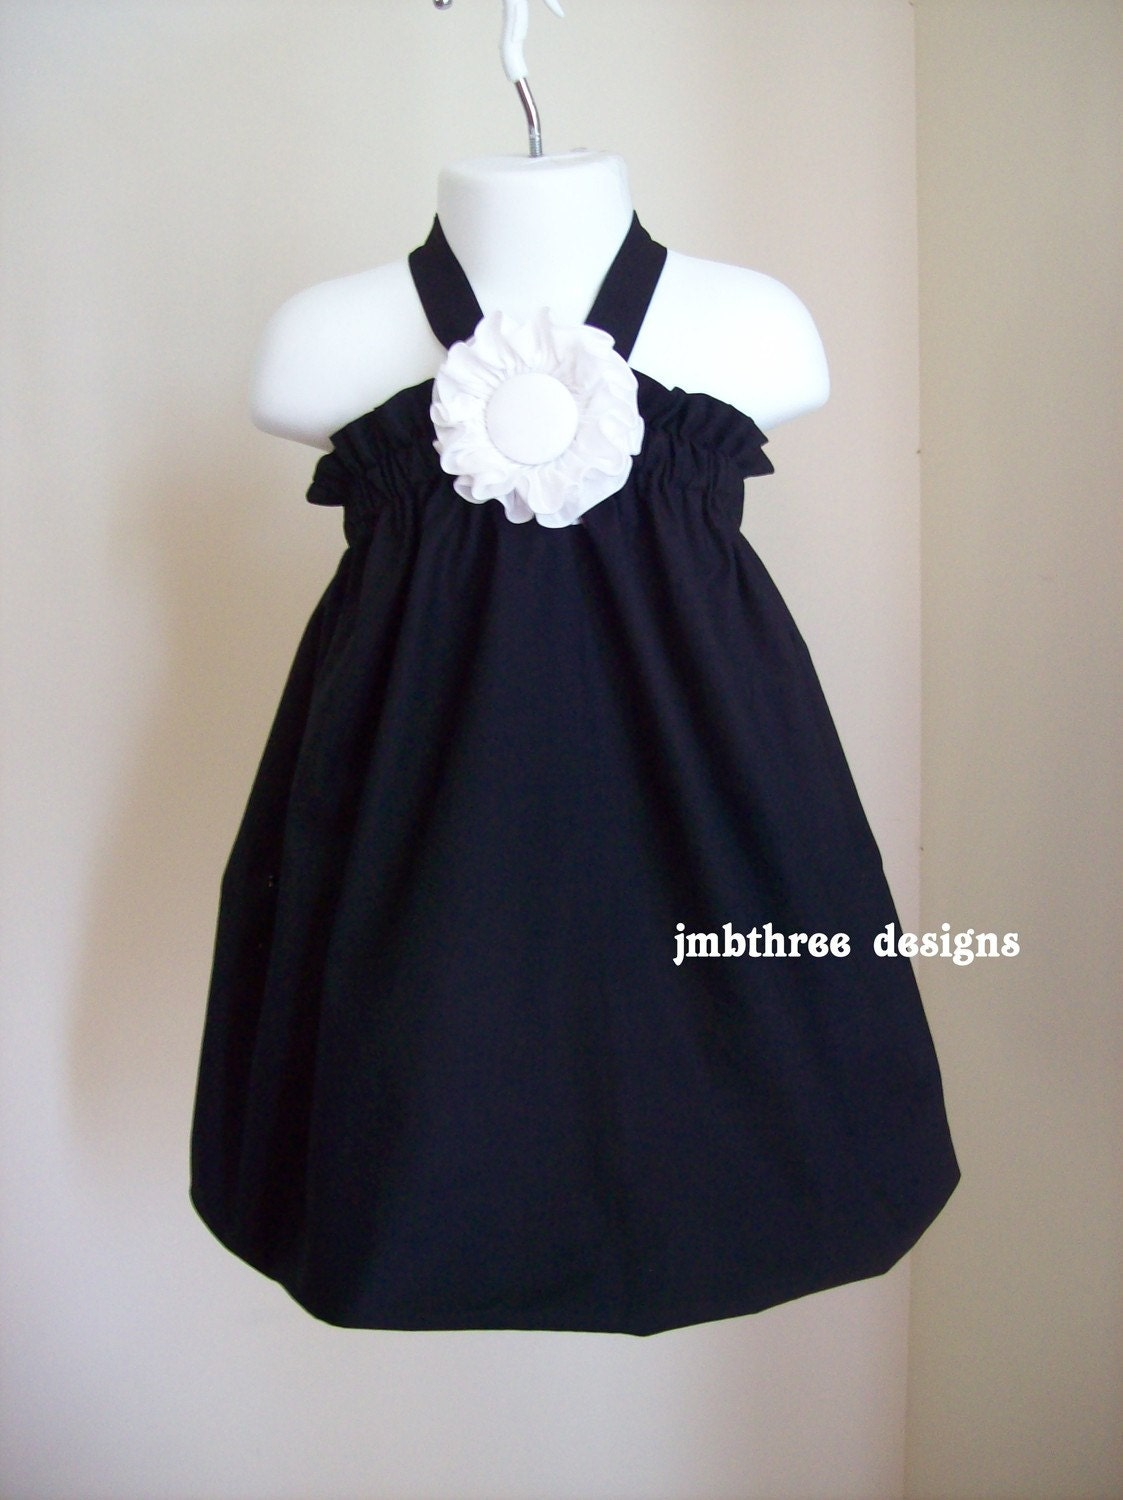 New Tuxedo Black Halter Top/Dress Toddler Infant Sundress size